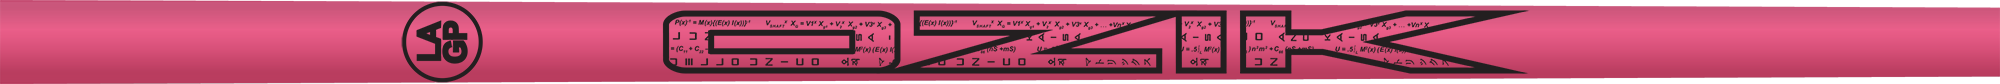 Ozik White Tie: Neon Pink Black Satin - Wood 40 R